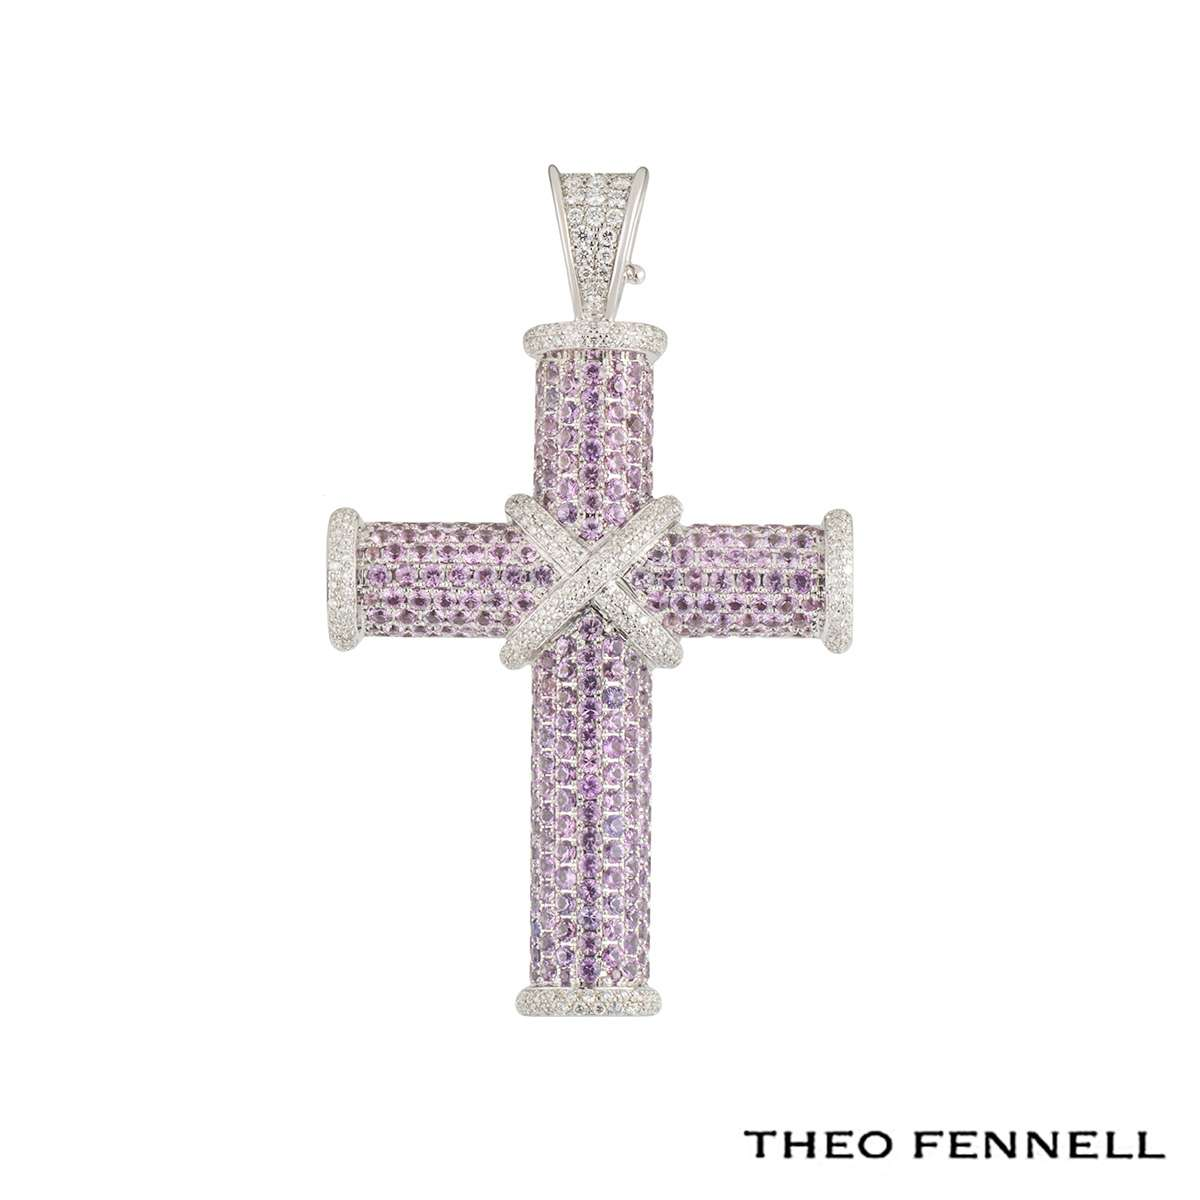 Theo Fennell White Gold Pink Sapphire and Diamond Crosses Pendant